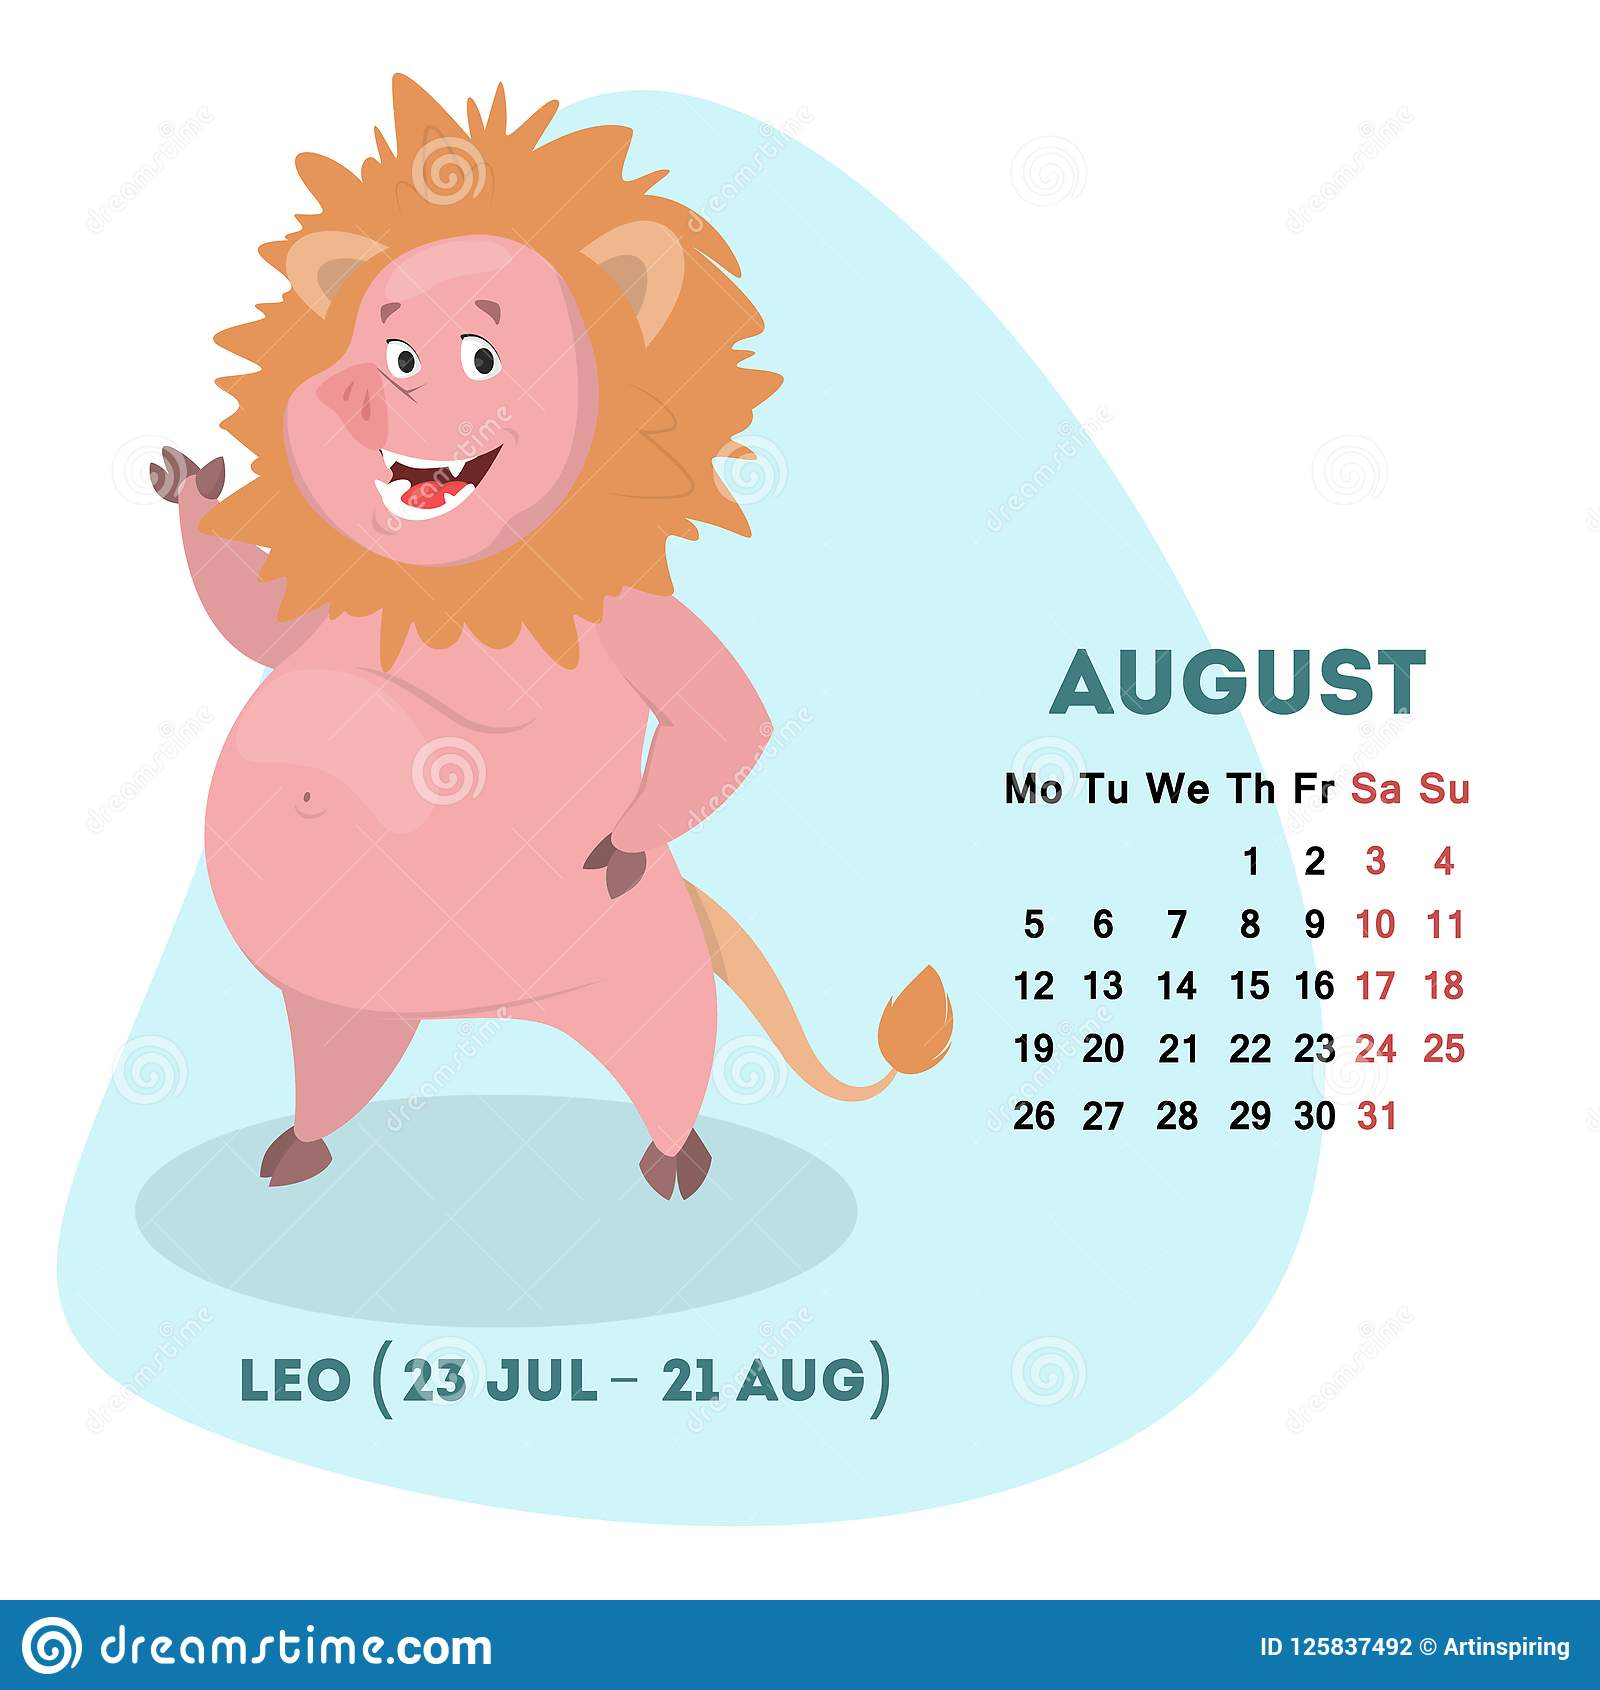 Pig Calendar For August 2019 With Horoscope Sign Stock Vector